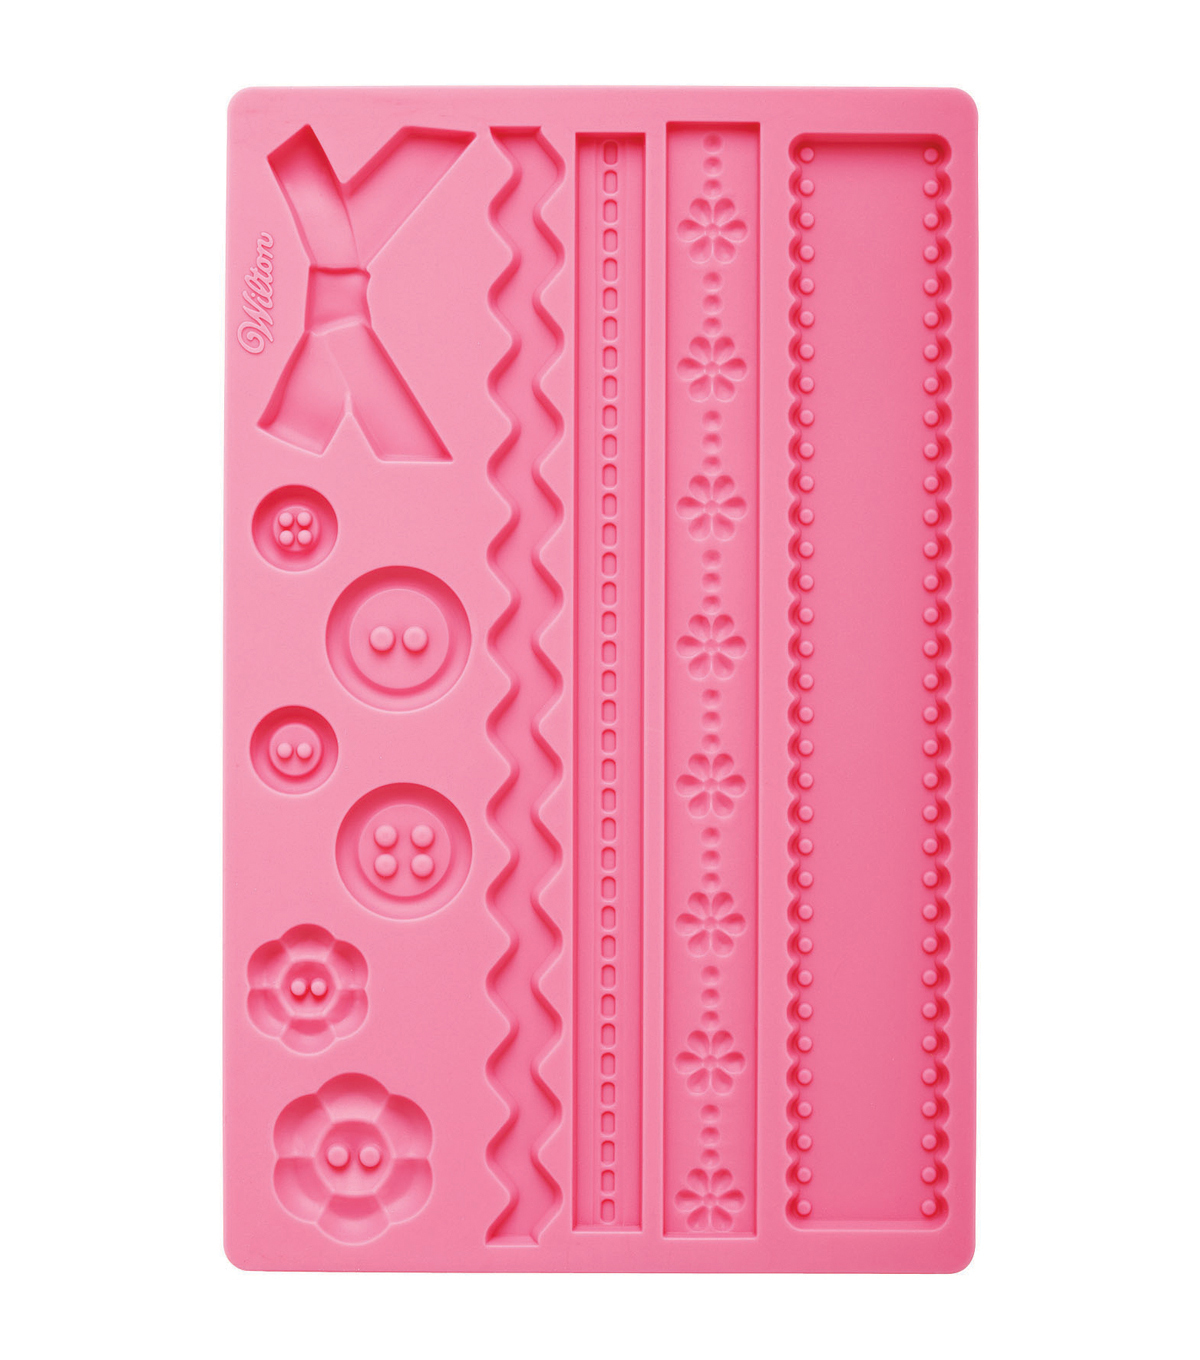 Wilton Fondant And Gum Paste Silicone Mold Fabric